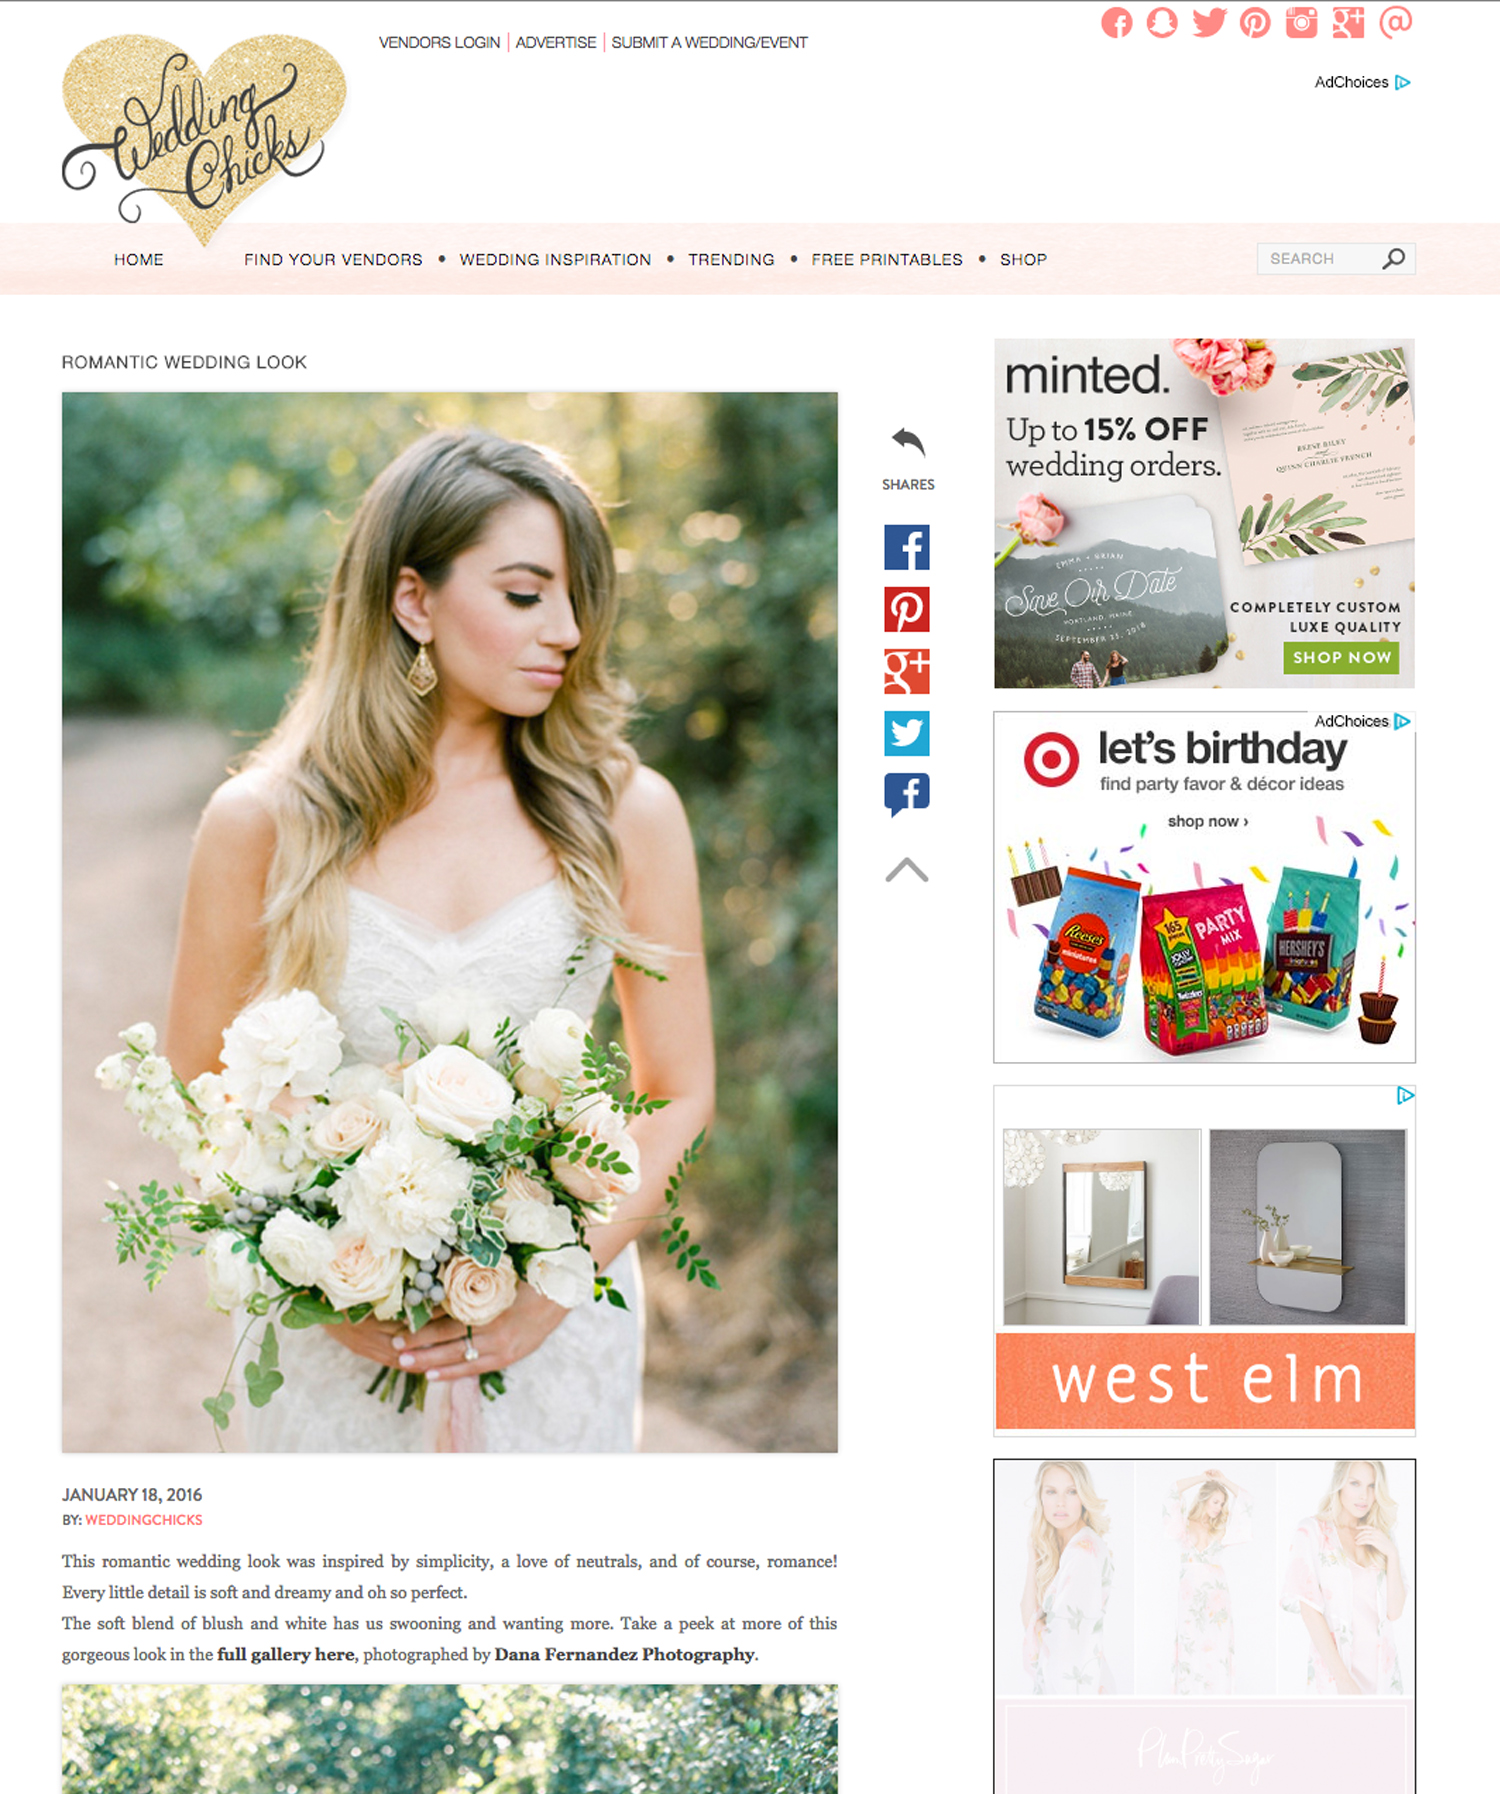 Wedding Chicks | Jan '16 (Editorial)